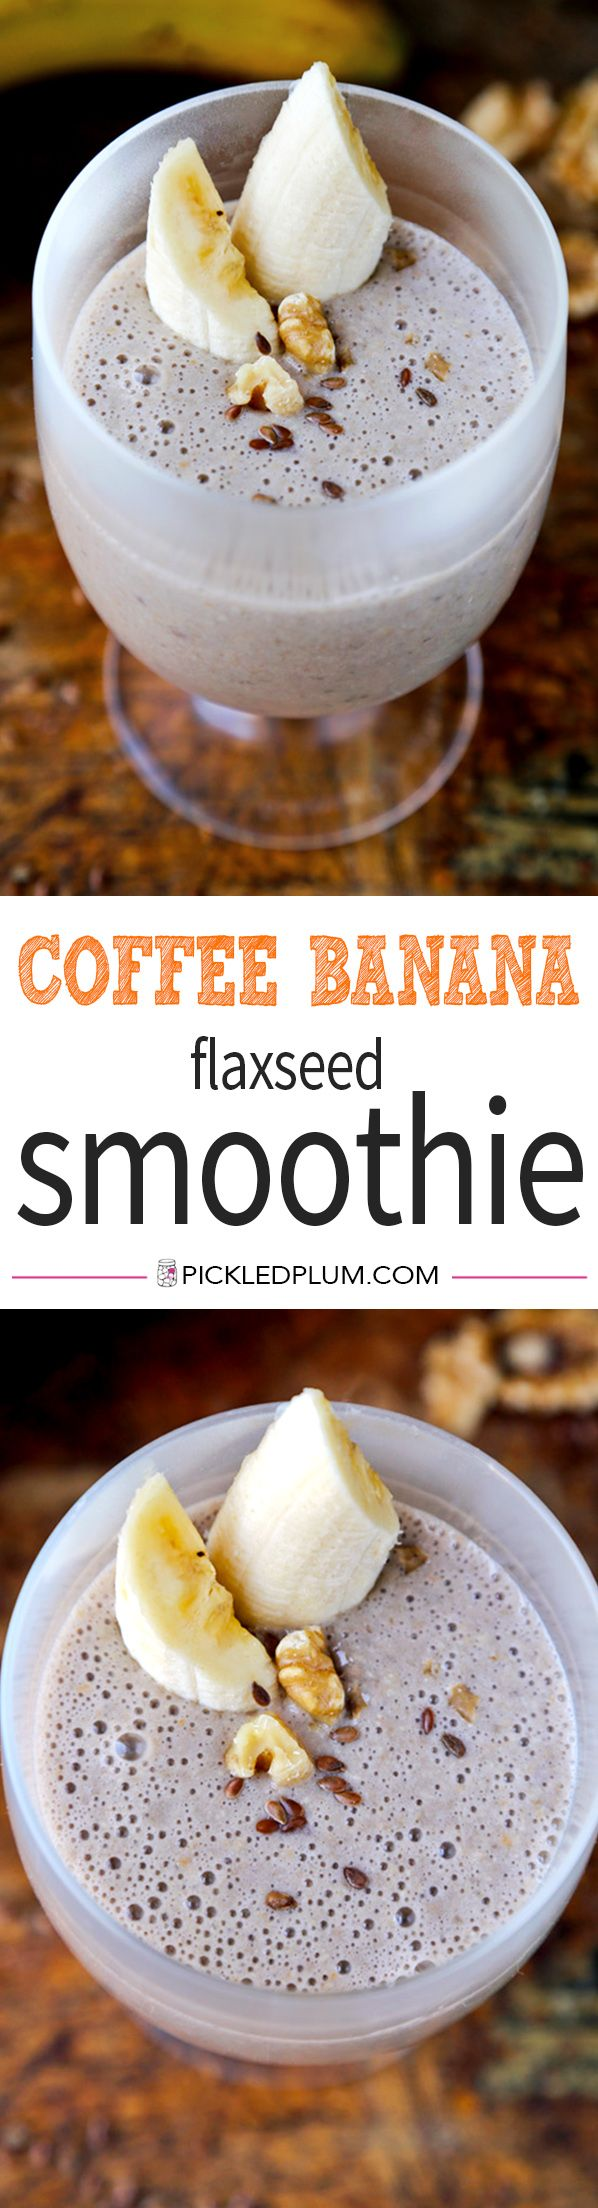 Coffee-Banana-Flaxseed Smoothie - The sweetest way to get a caffeine jolt in the morning! We love this for breakfast! Drinks, Healthy   pickledplum.com